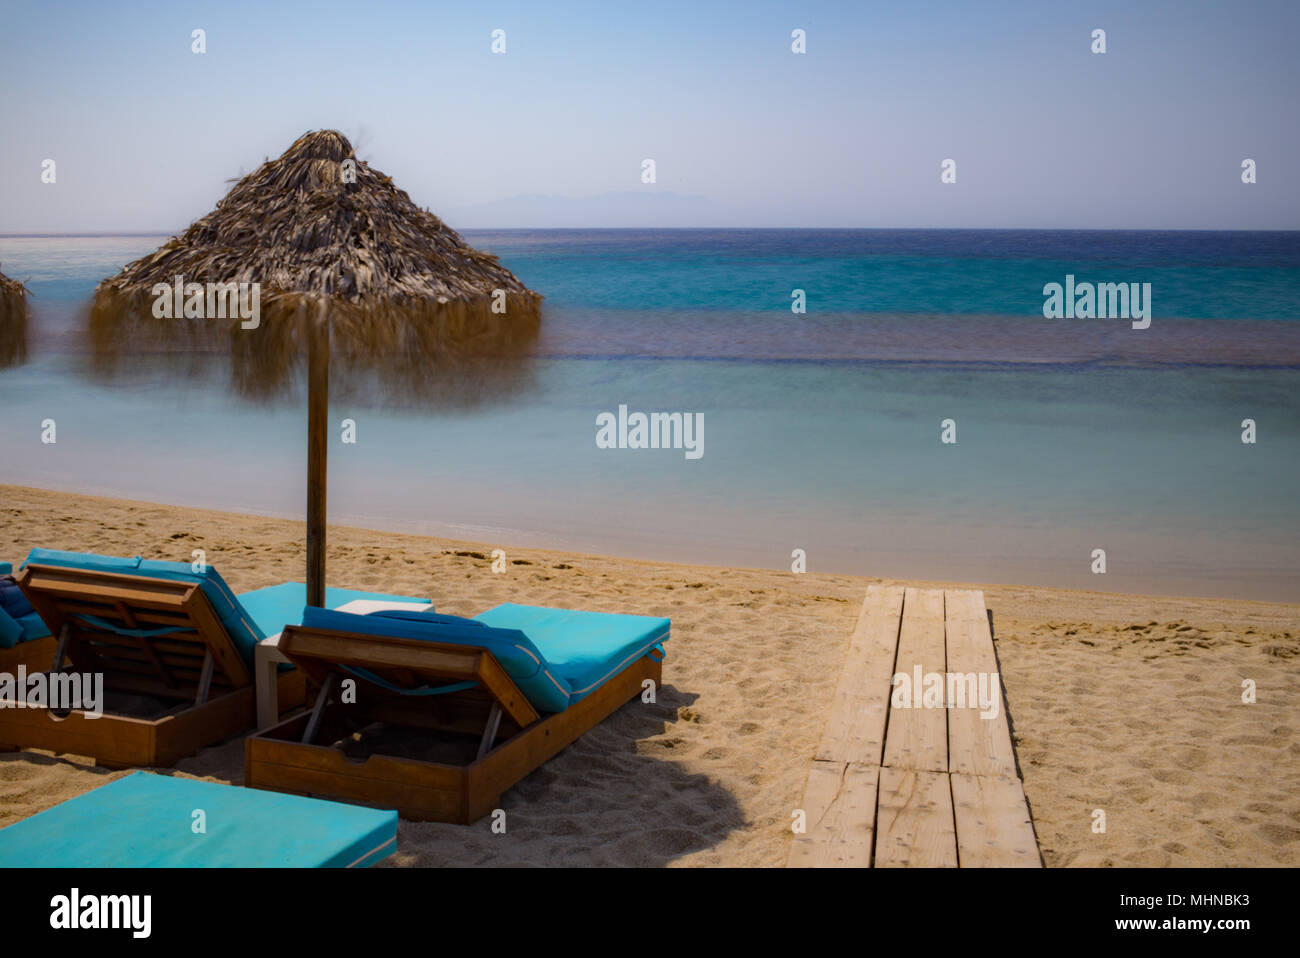 Greece blue beach holiday - Stock Image